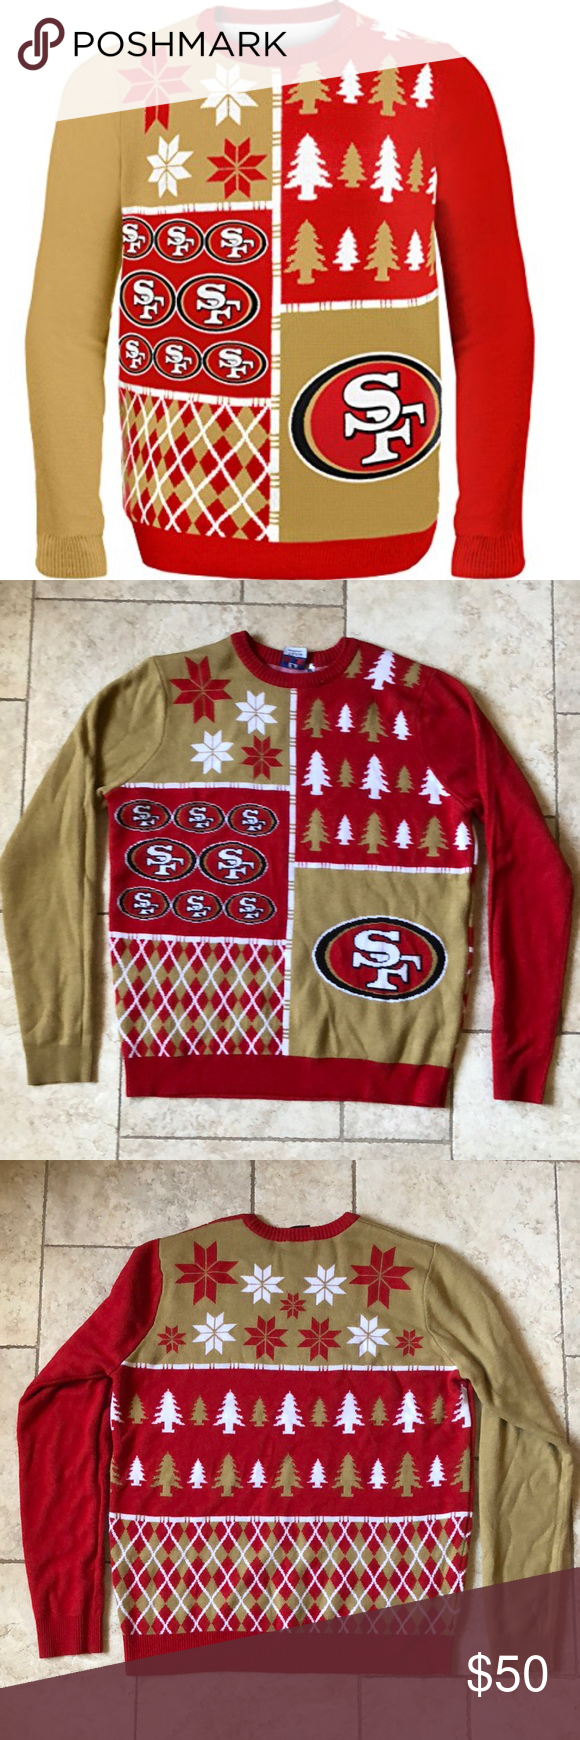 Sf 49ers Ugly Christmas Sweater Ugliest Christmas Sweaters Retail